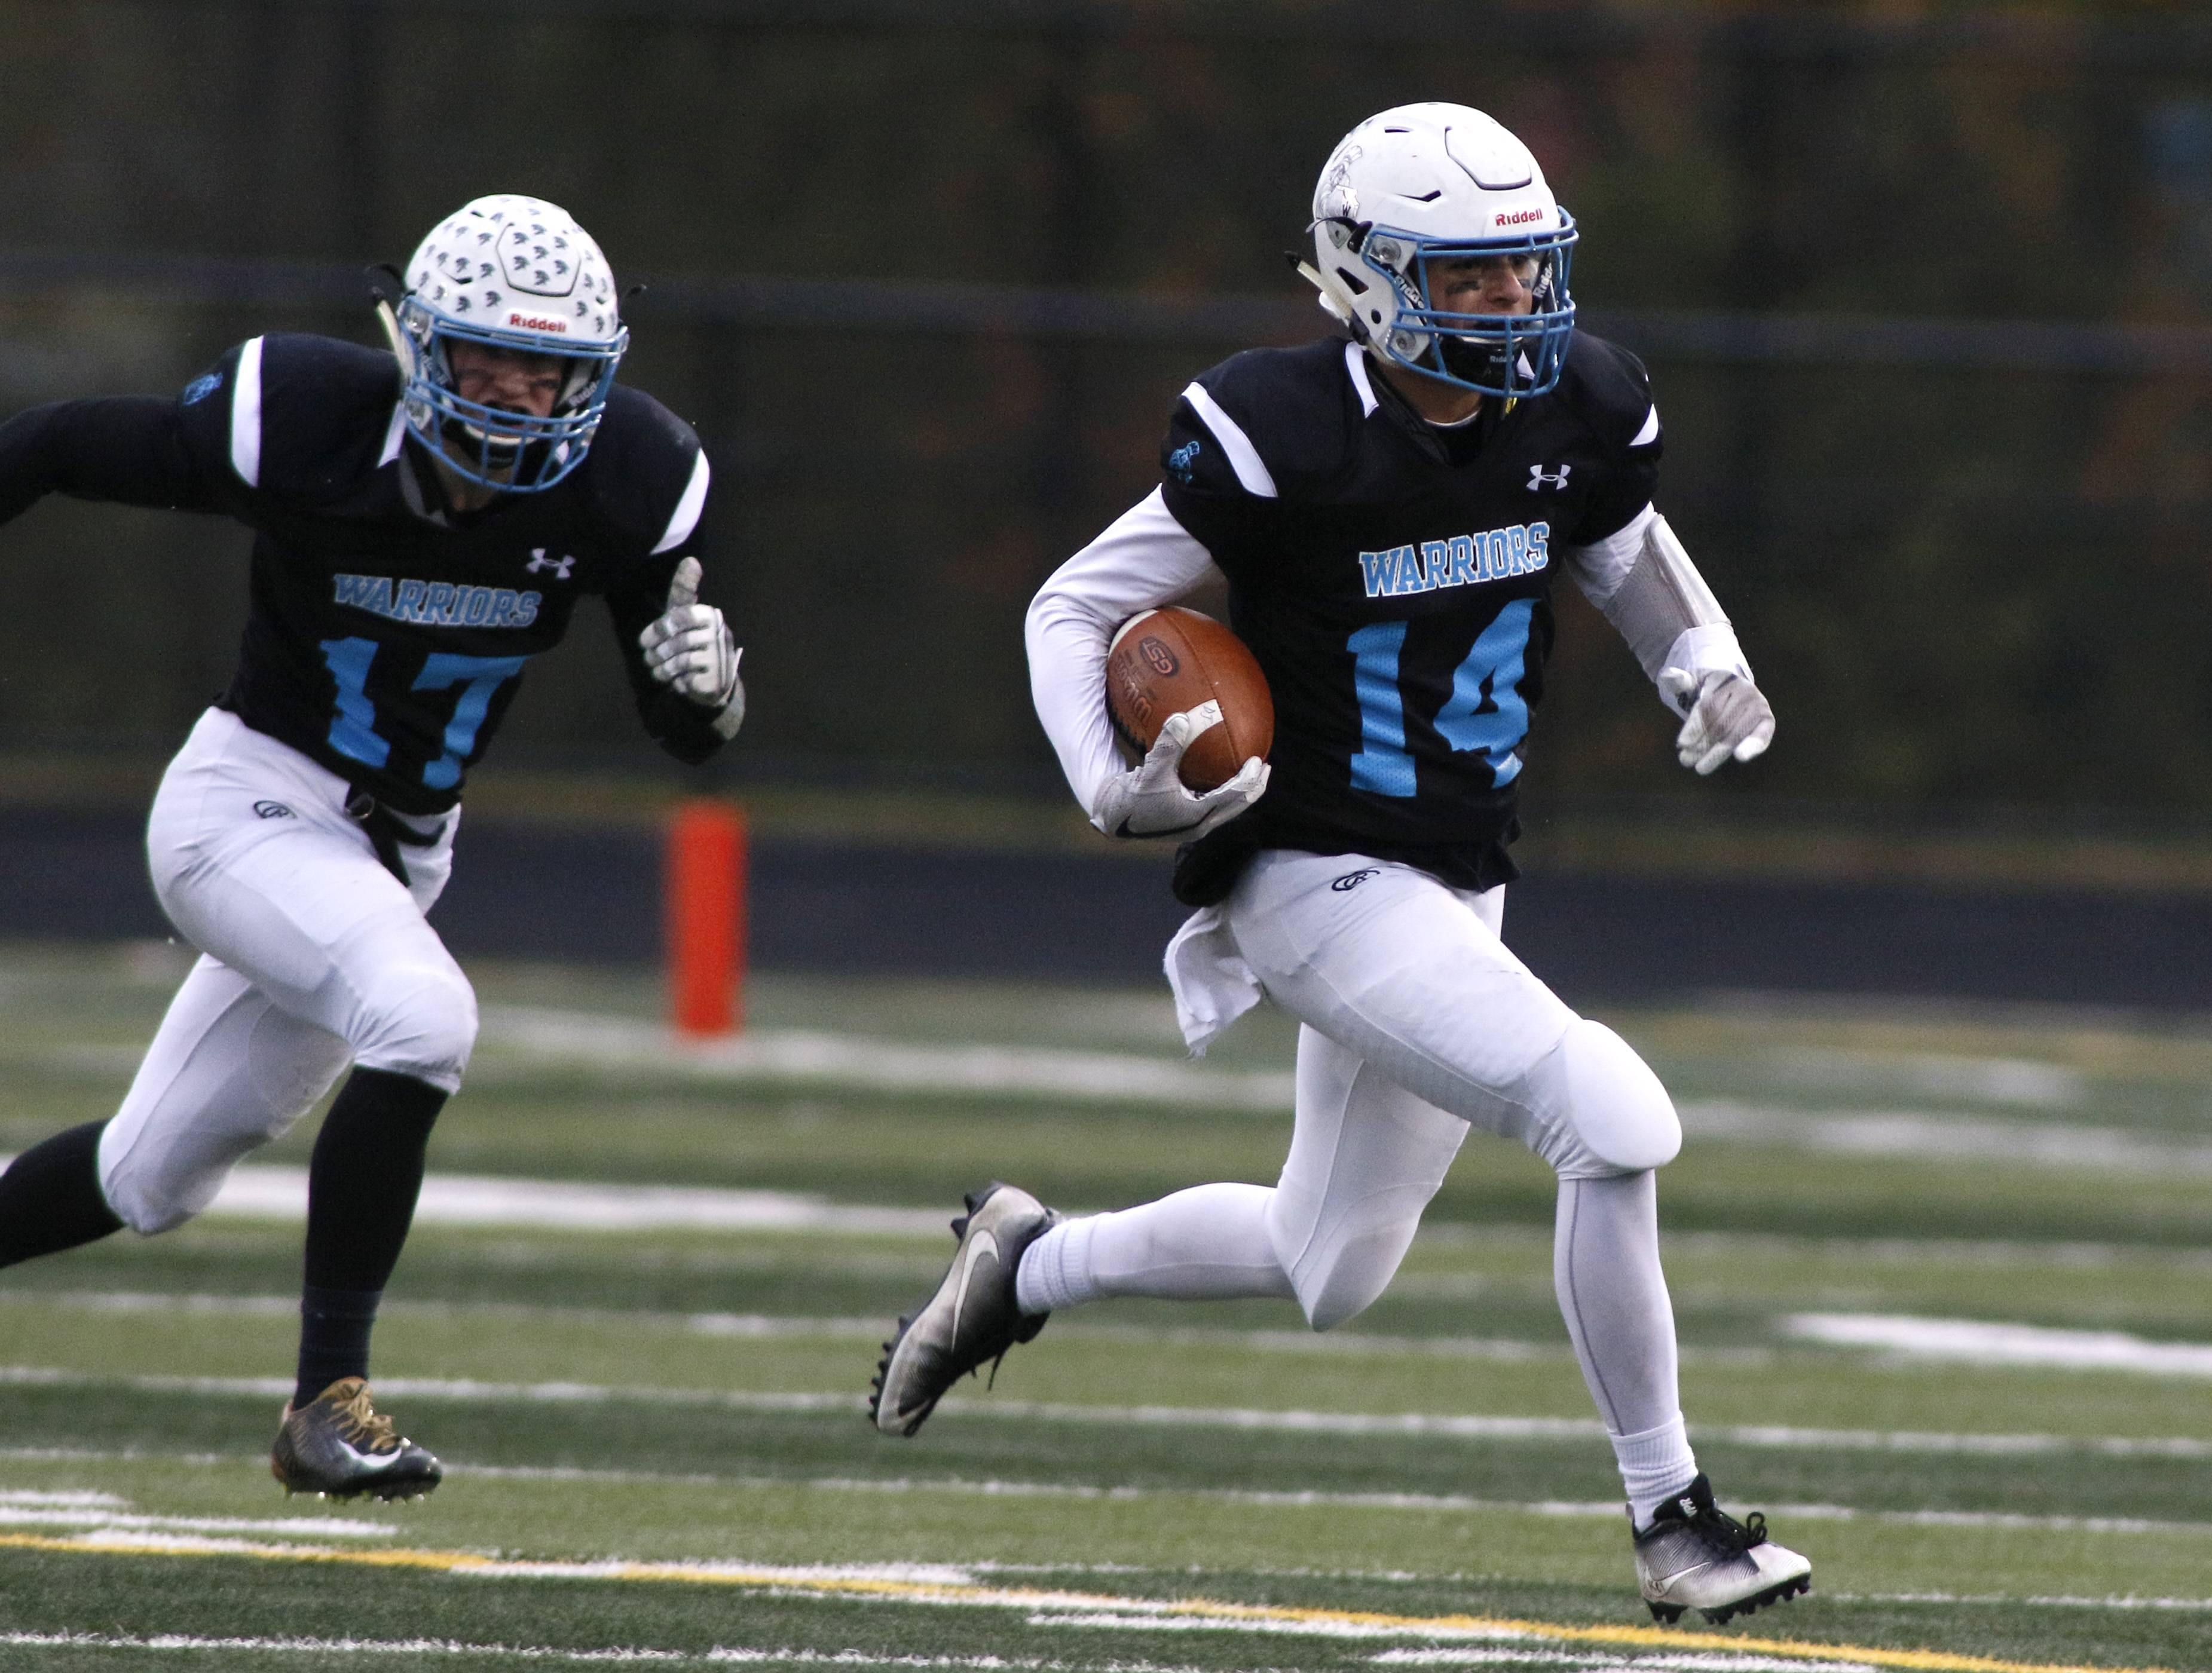 Willowbrook works fast to rout Deerfield